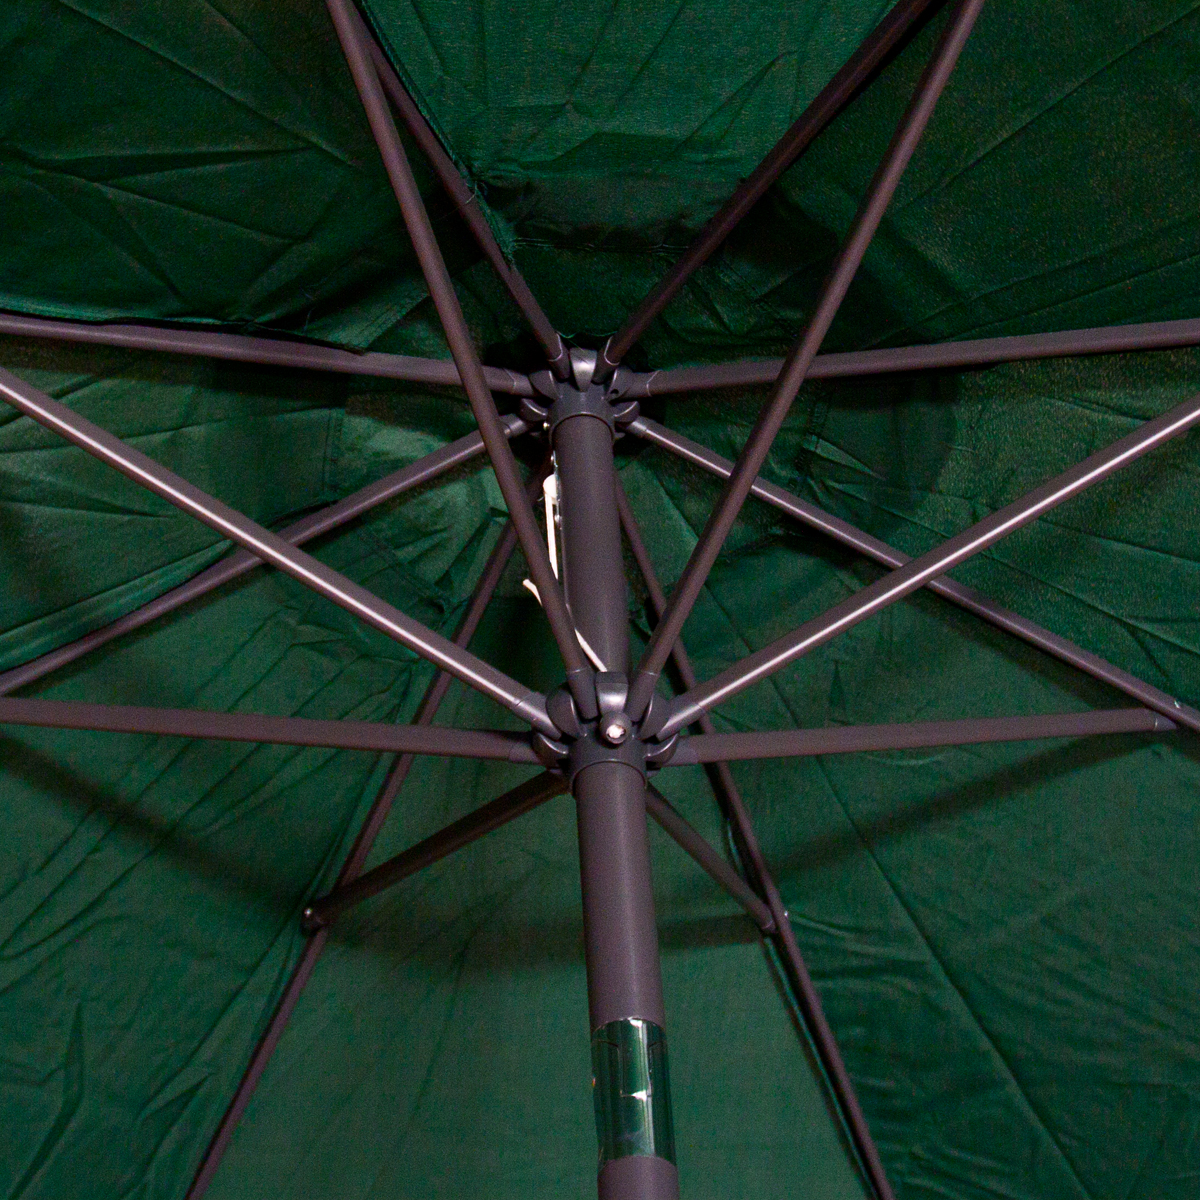 Patio Umbrella Replacement Canopy: Replacement Cover Canopy 9 FT 8 Ribs Umbrella Green Top